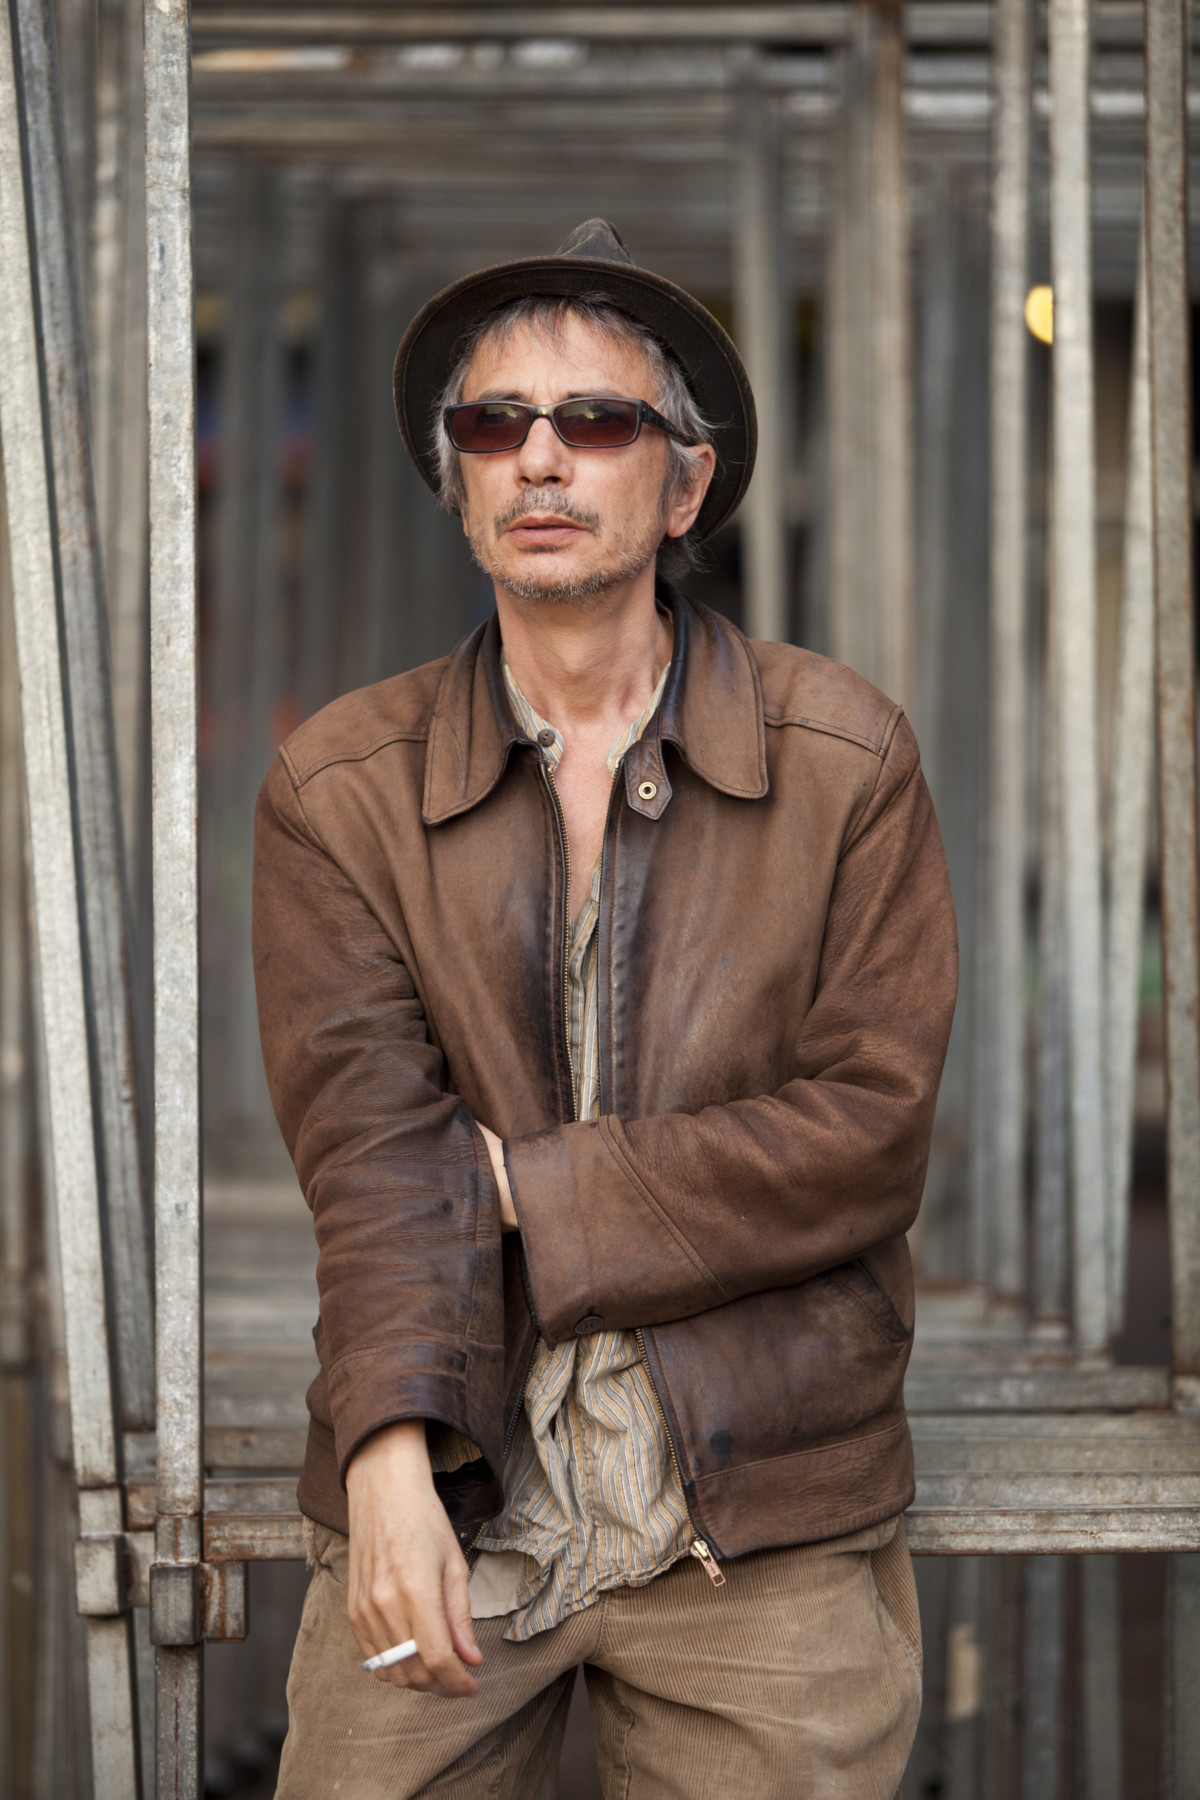 leos carax interviewleos carax imdb, leos carax anette, leos carax interview, leos carax quotes, leos carax sans titre, leos carax wife, leos carax pronunciation, leos carax facebook, leos carax short film, leos carax gradiva, leos carax tokyo, leos carax holy motors, leos carax boy meets girl, leos carax wiki, leos carax sparks, leo carax modern love, leos carax new film, leos carax david bowie, leos carax bad blood, leos carax documentary